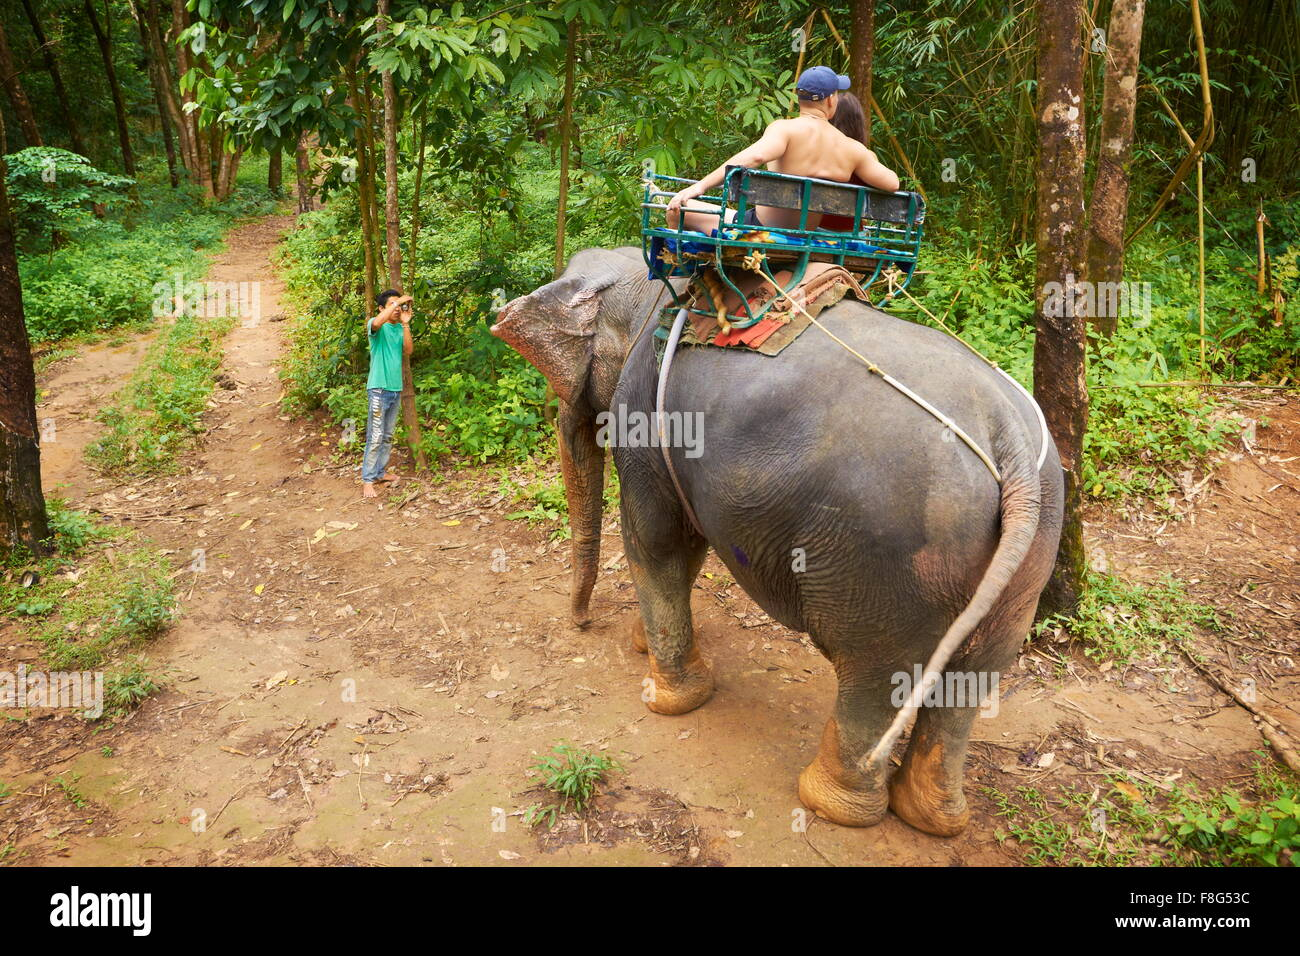 Elephant ride in tropical forest, Khao Lak National Park, Thailand - Stock Image